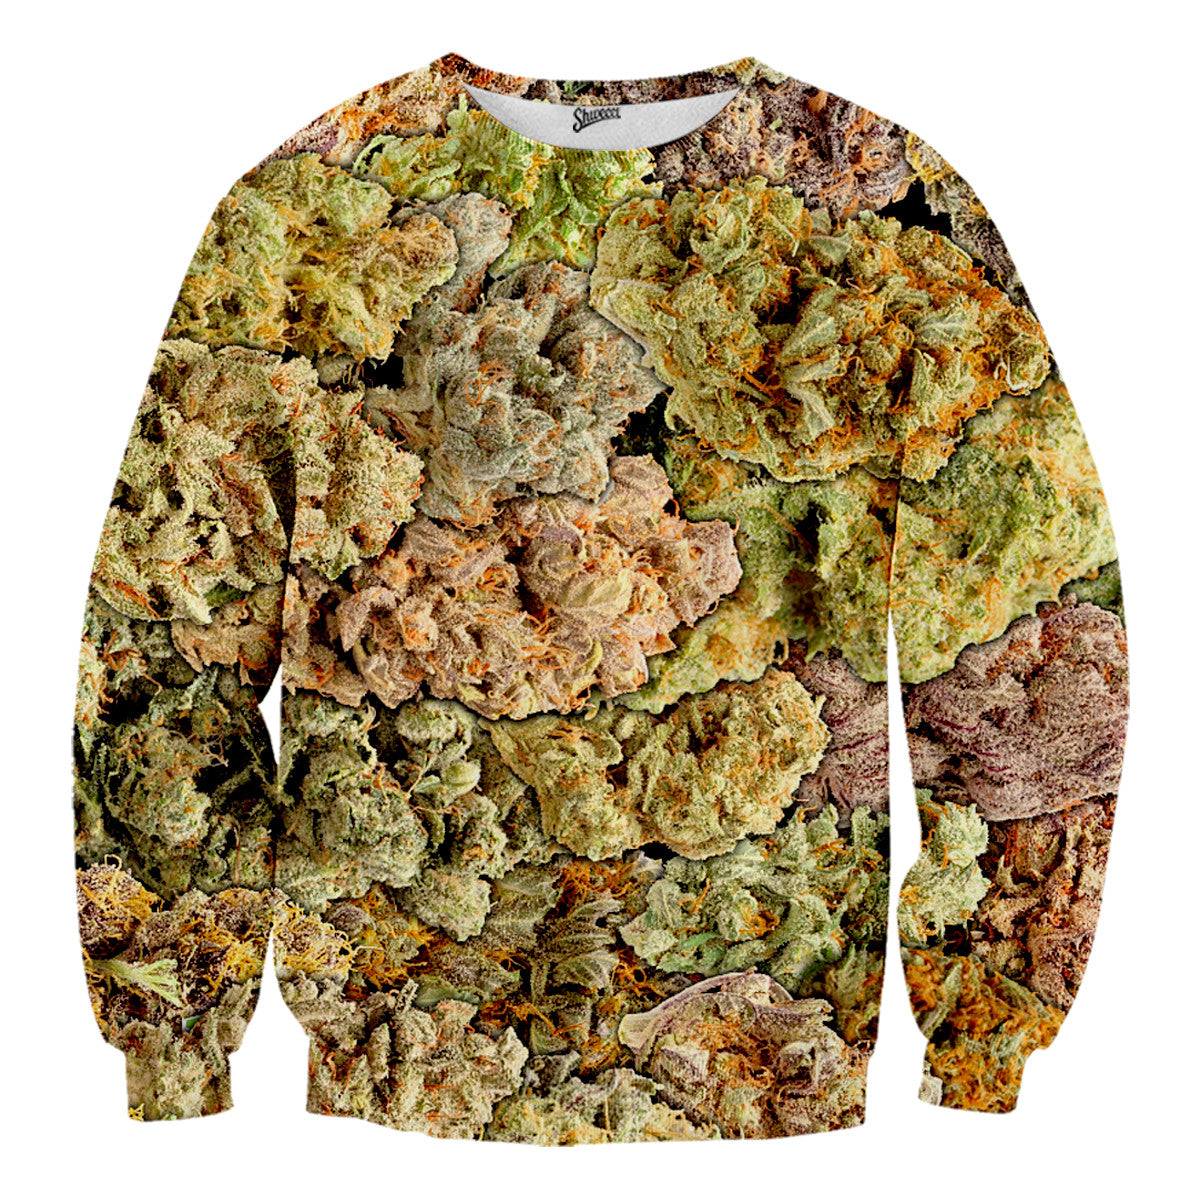 All Buds Sweater - Shweeet